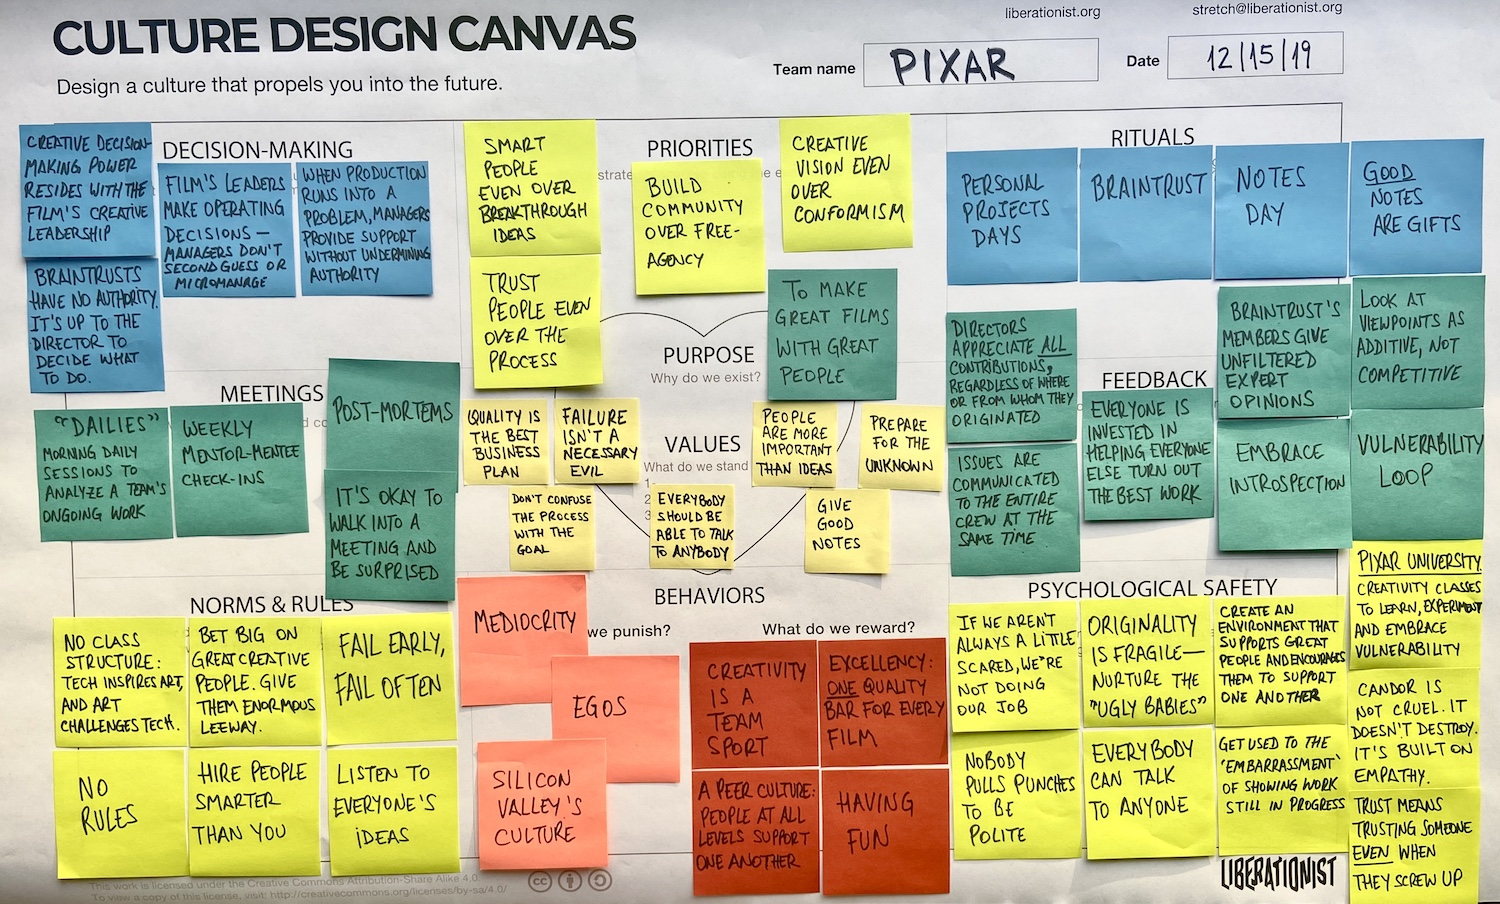 pixar creative and collaborative culture mapped using the culture design canvas